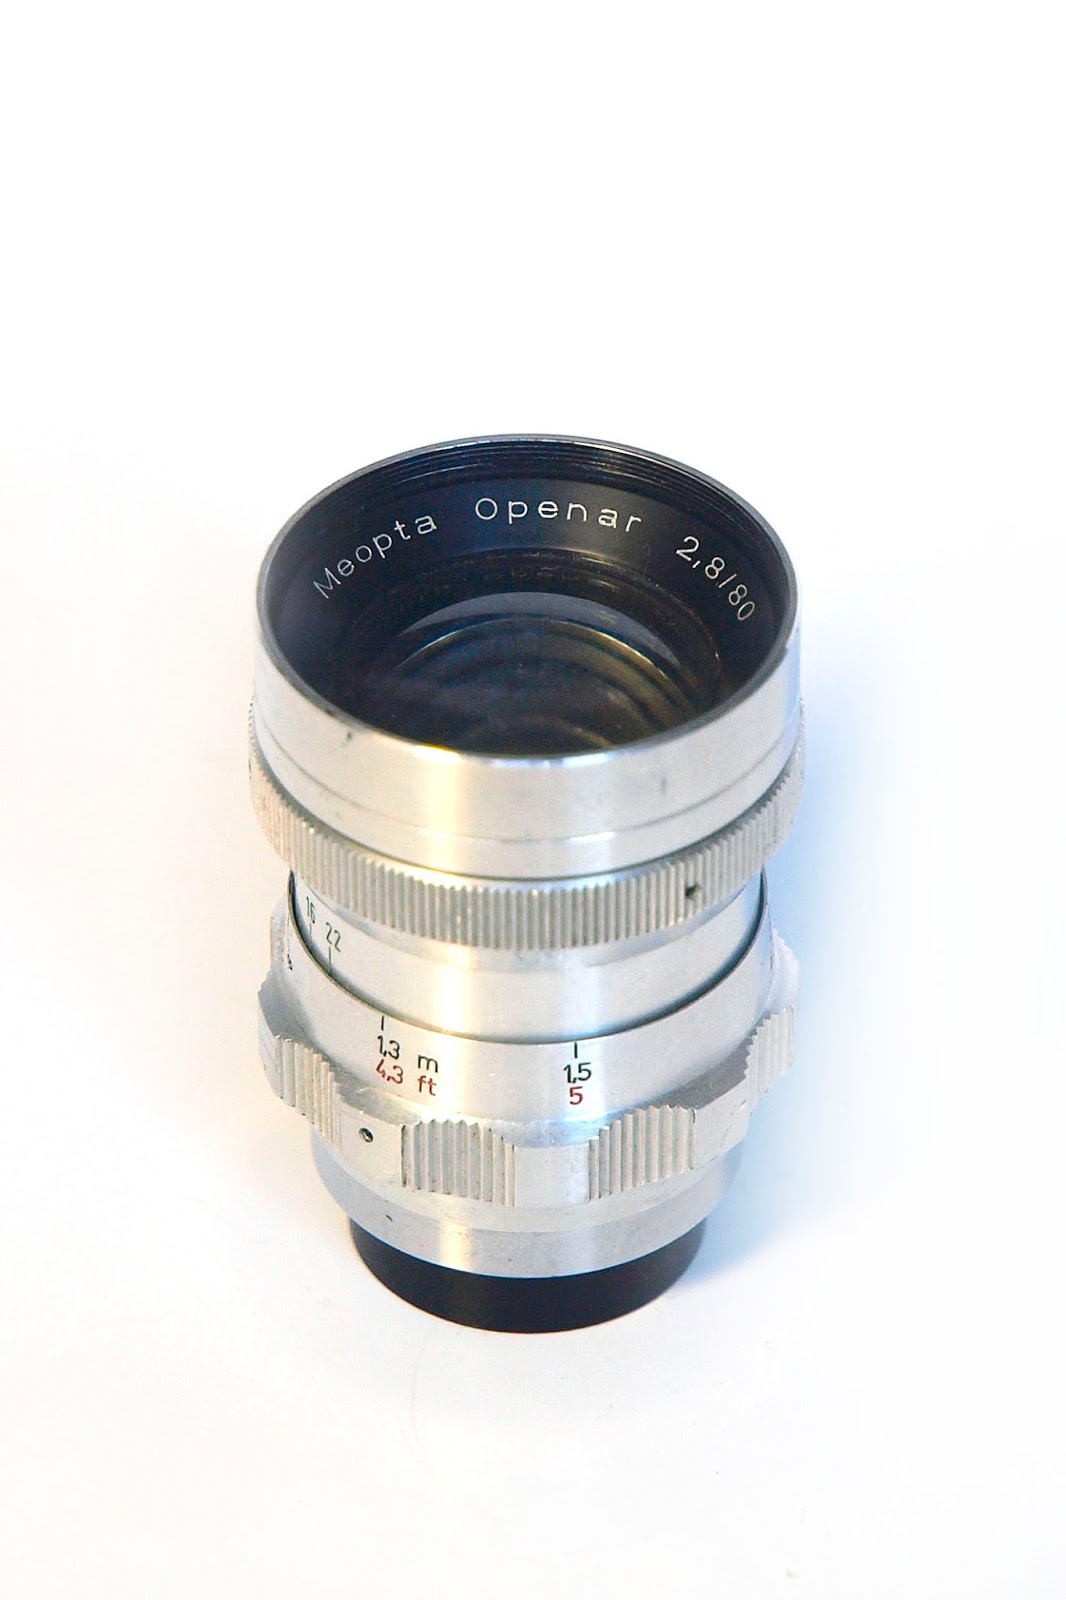 Meopta Openar 80/2.8 without original lens hood.